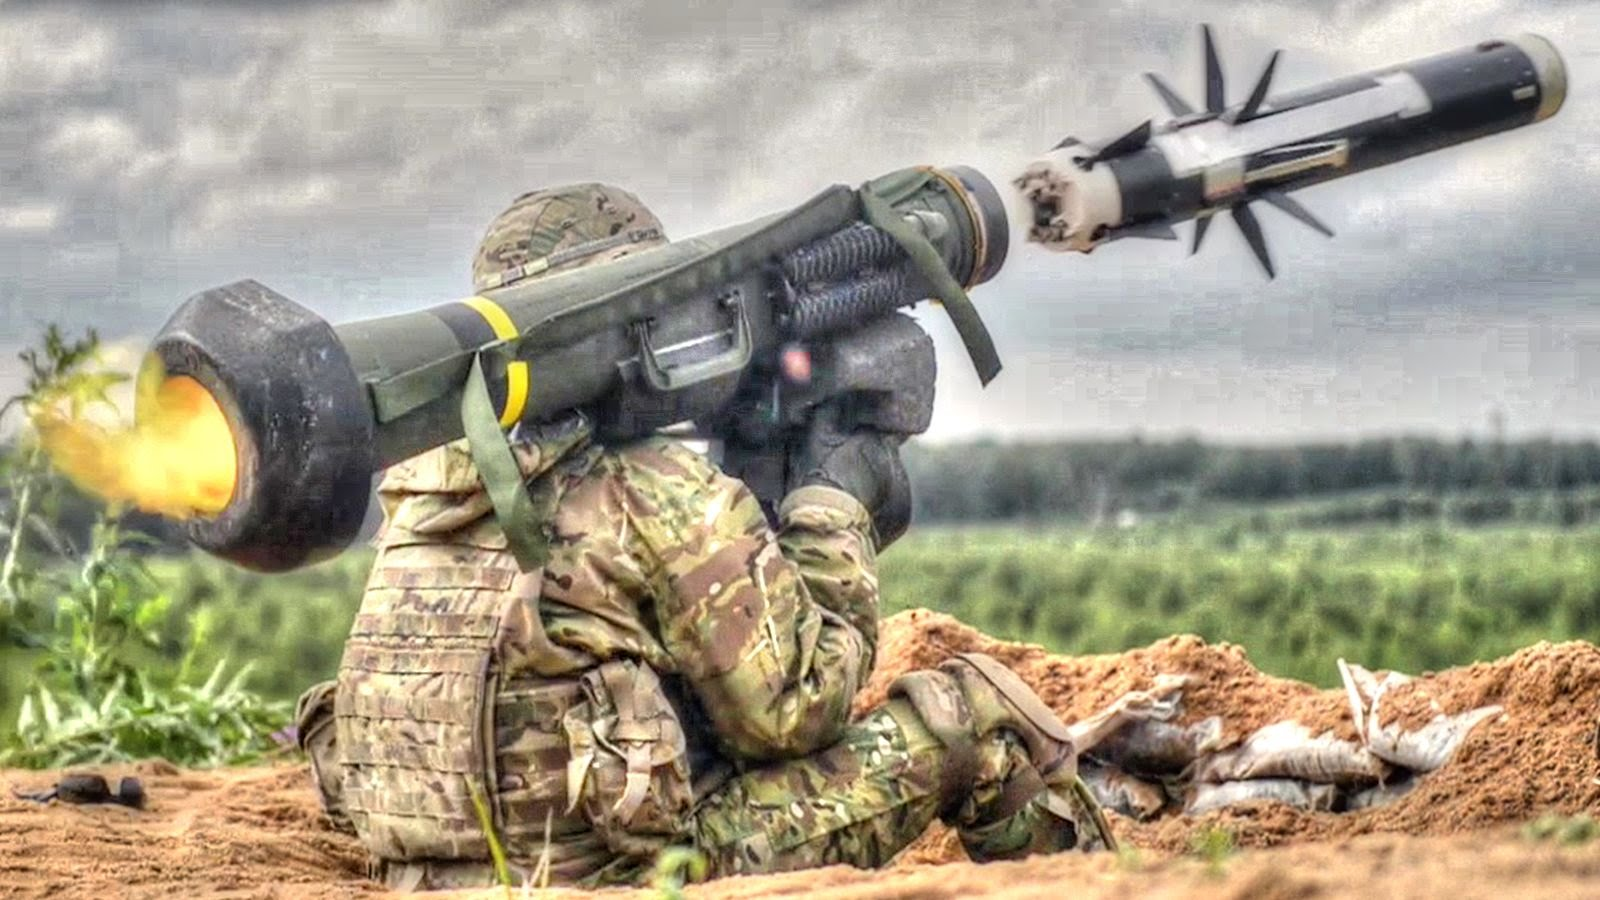 Soldiers with 2nd Cavalry Regiment fire FGM-148 Javelin anti-tank missiles during a combined arms live fire training exercise at the Estonian Defense Forces central training area in Estonia. (Ben Houtkooper/Aiir Source Military/YouTube)